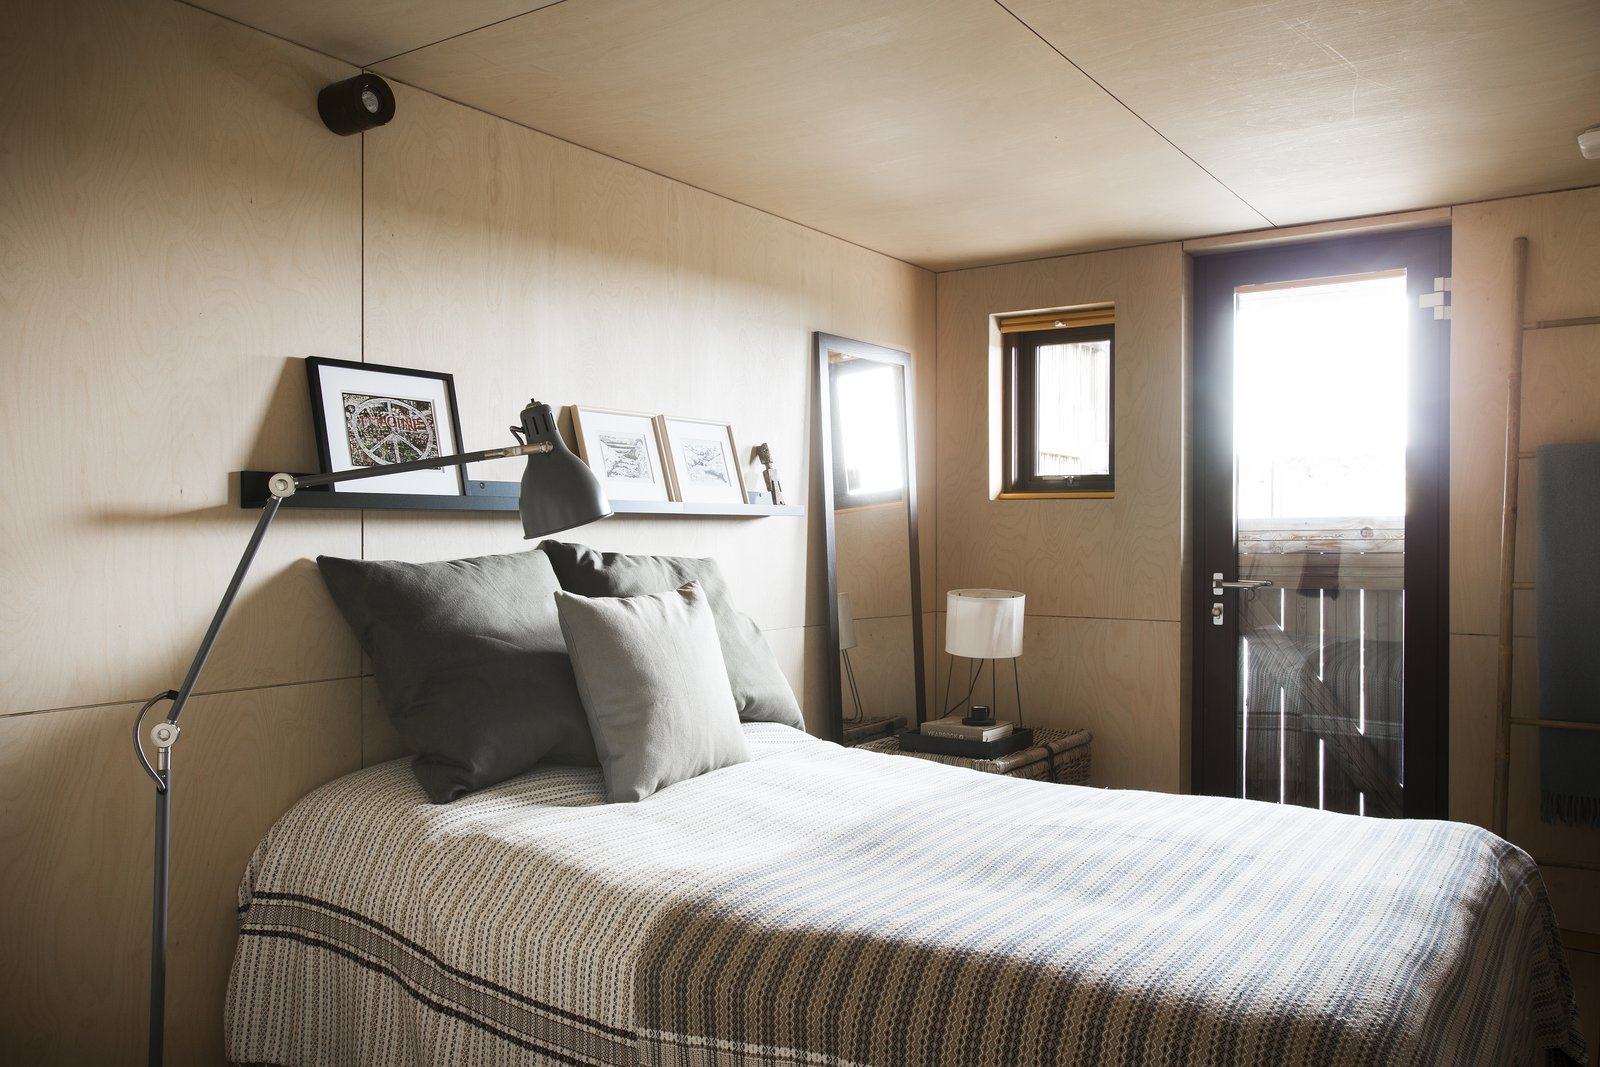 Bedroom, Bed, Floor Lighting, Table Lighting, Night Stands, Light Hardwood Floor, Wall Lighting, and Shelves  Photo 12 of 12 in Get in Touch With Iceland's Rugged Landscape While Staying at This Modern Coastal Barn